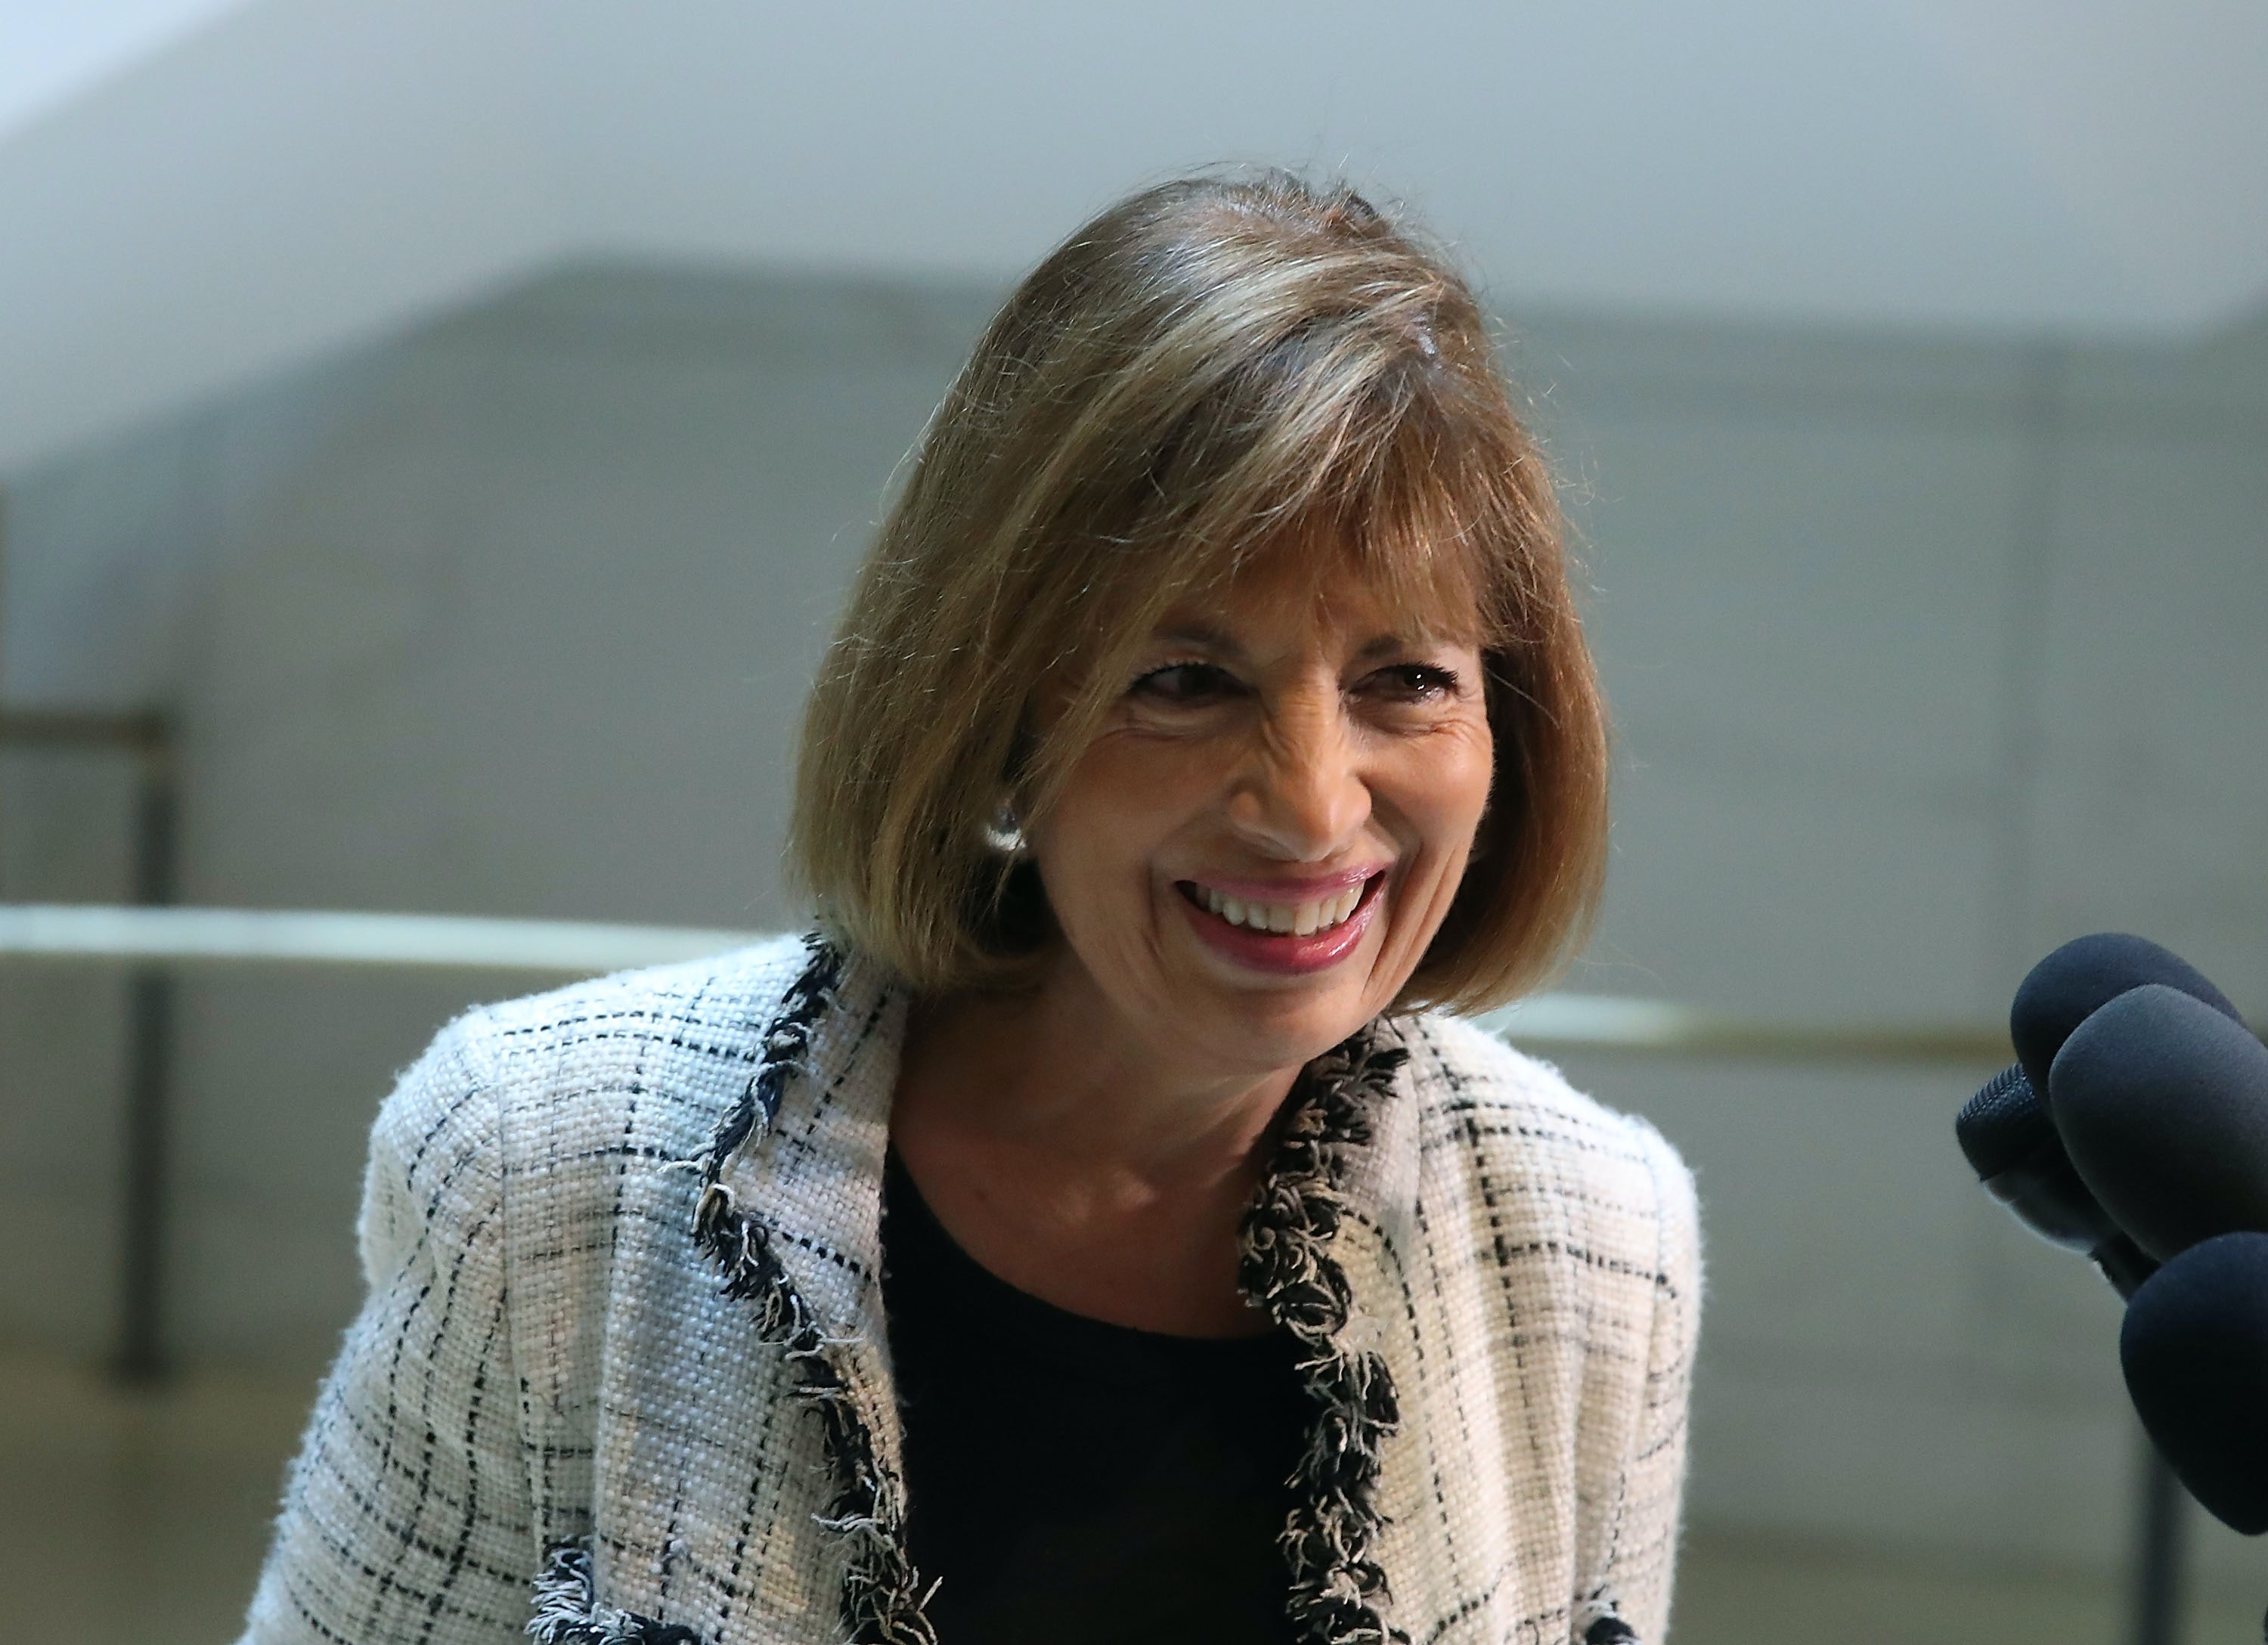 Rep. Jackie Speier Opens Up About Being Assaulted as a Congressional Staffer